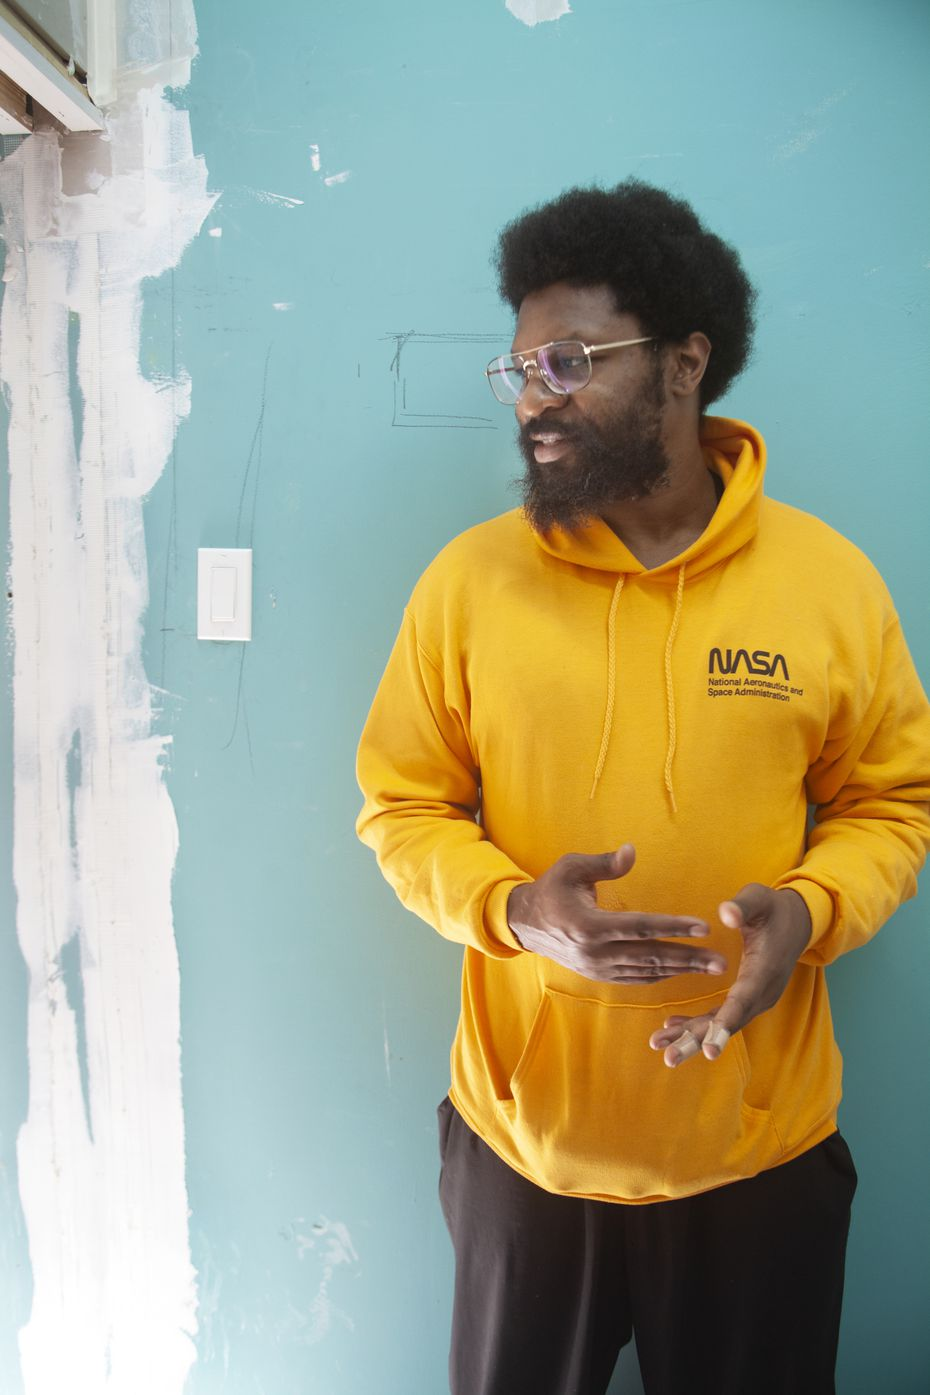 Artist Xxavier Edward Carter photographed on March 29, 2021 during construction of Cluley Projects in West Dallas, which will open on April 17, 2021. (Nan Coulter)